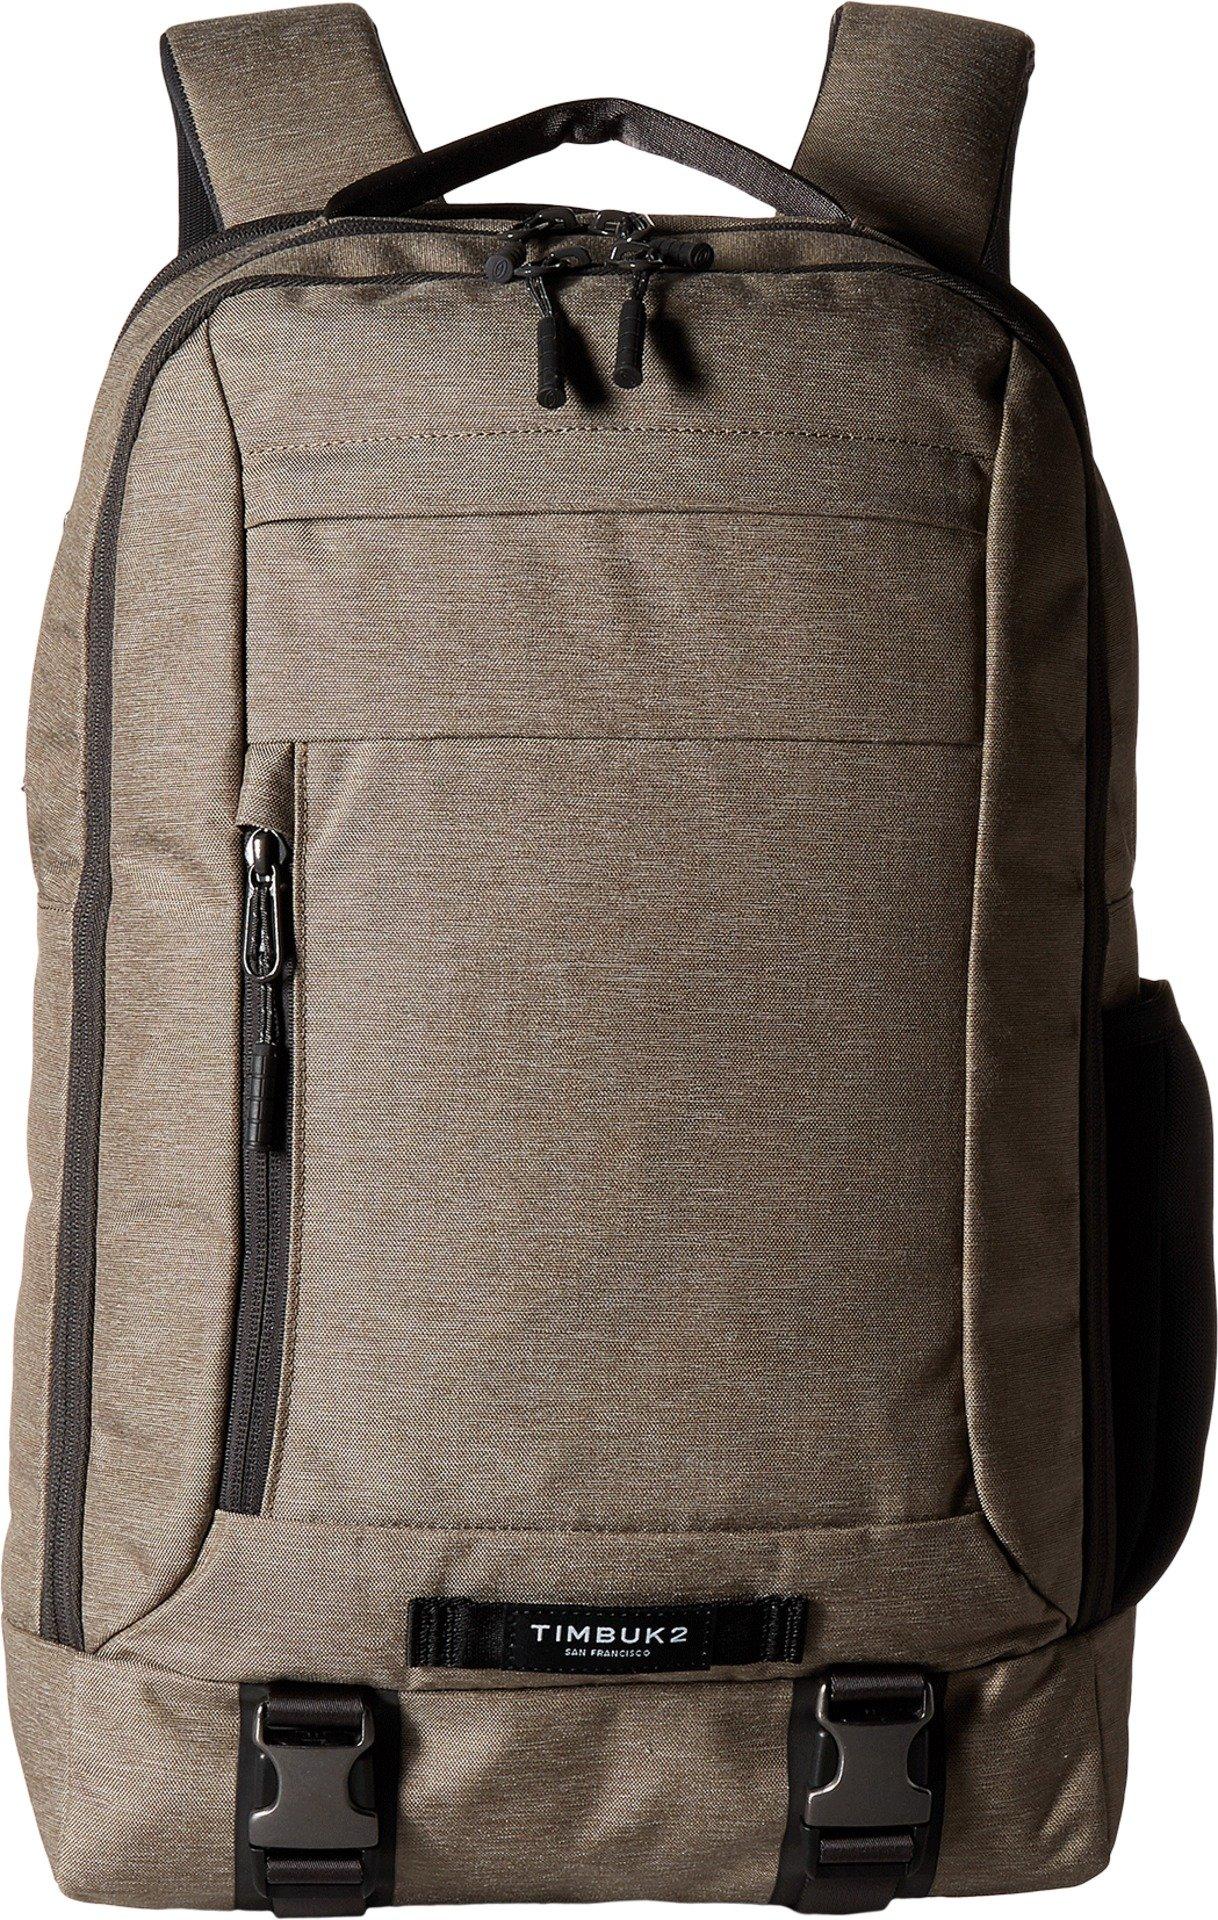 Timbuk2 The Authority Pack (Oxide Heather) by Timbuk2